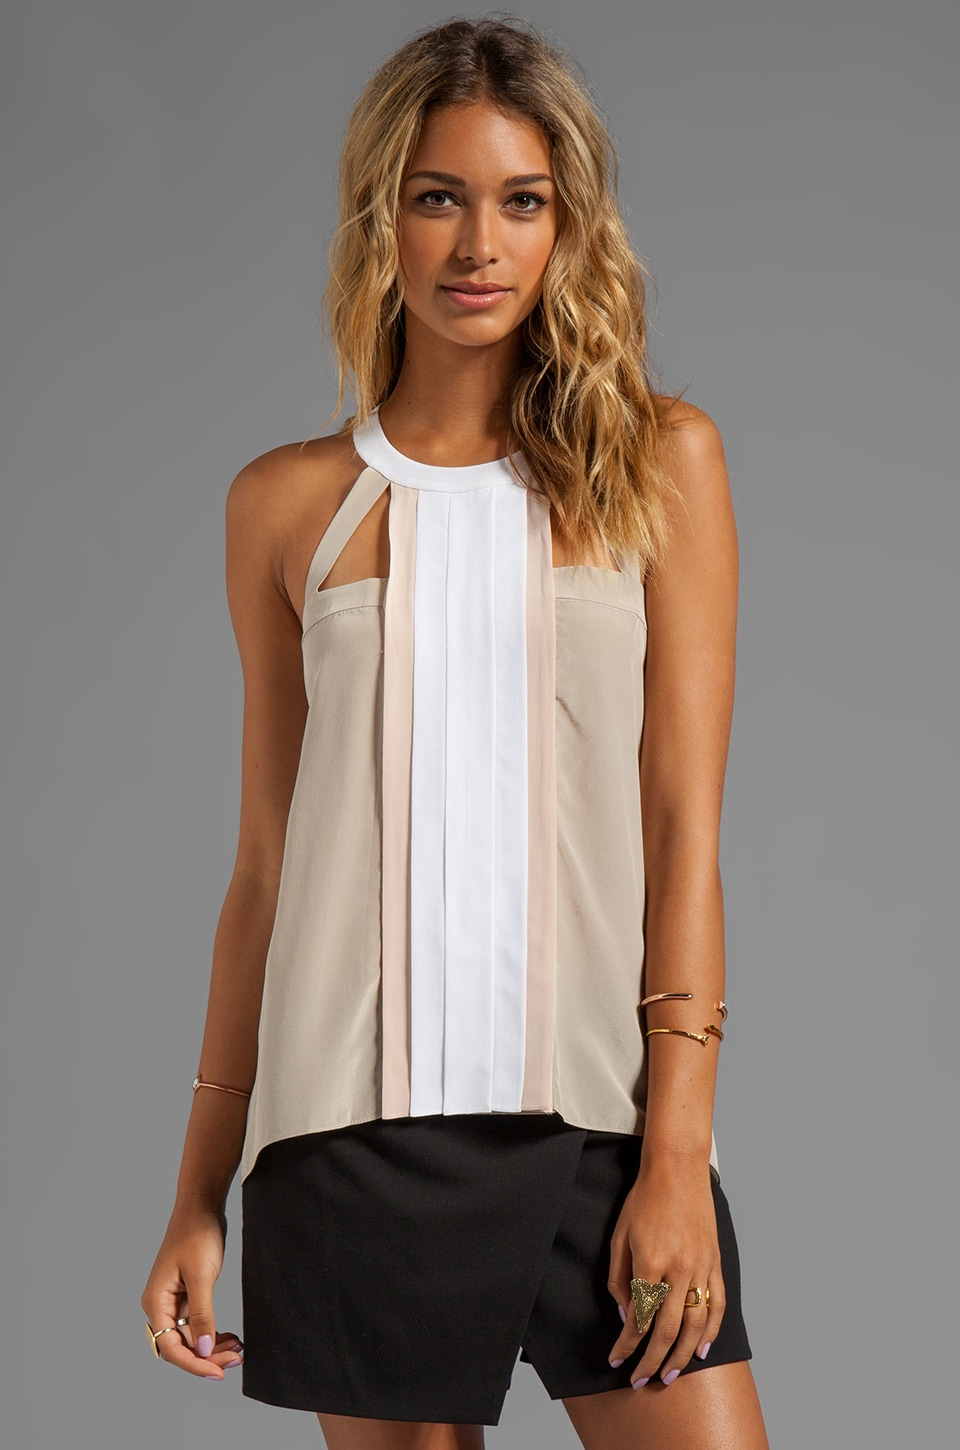 BCBGMAXAZRIA Color Block Tank in Pumice Combo